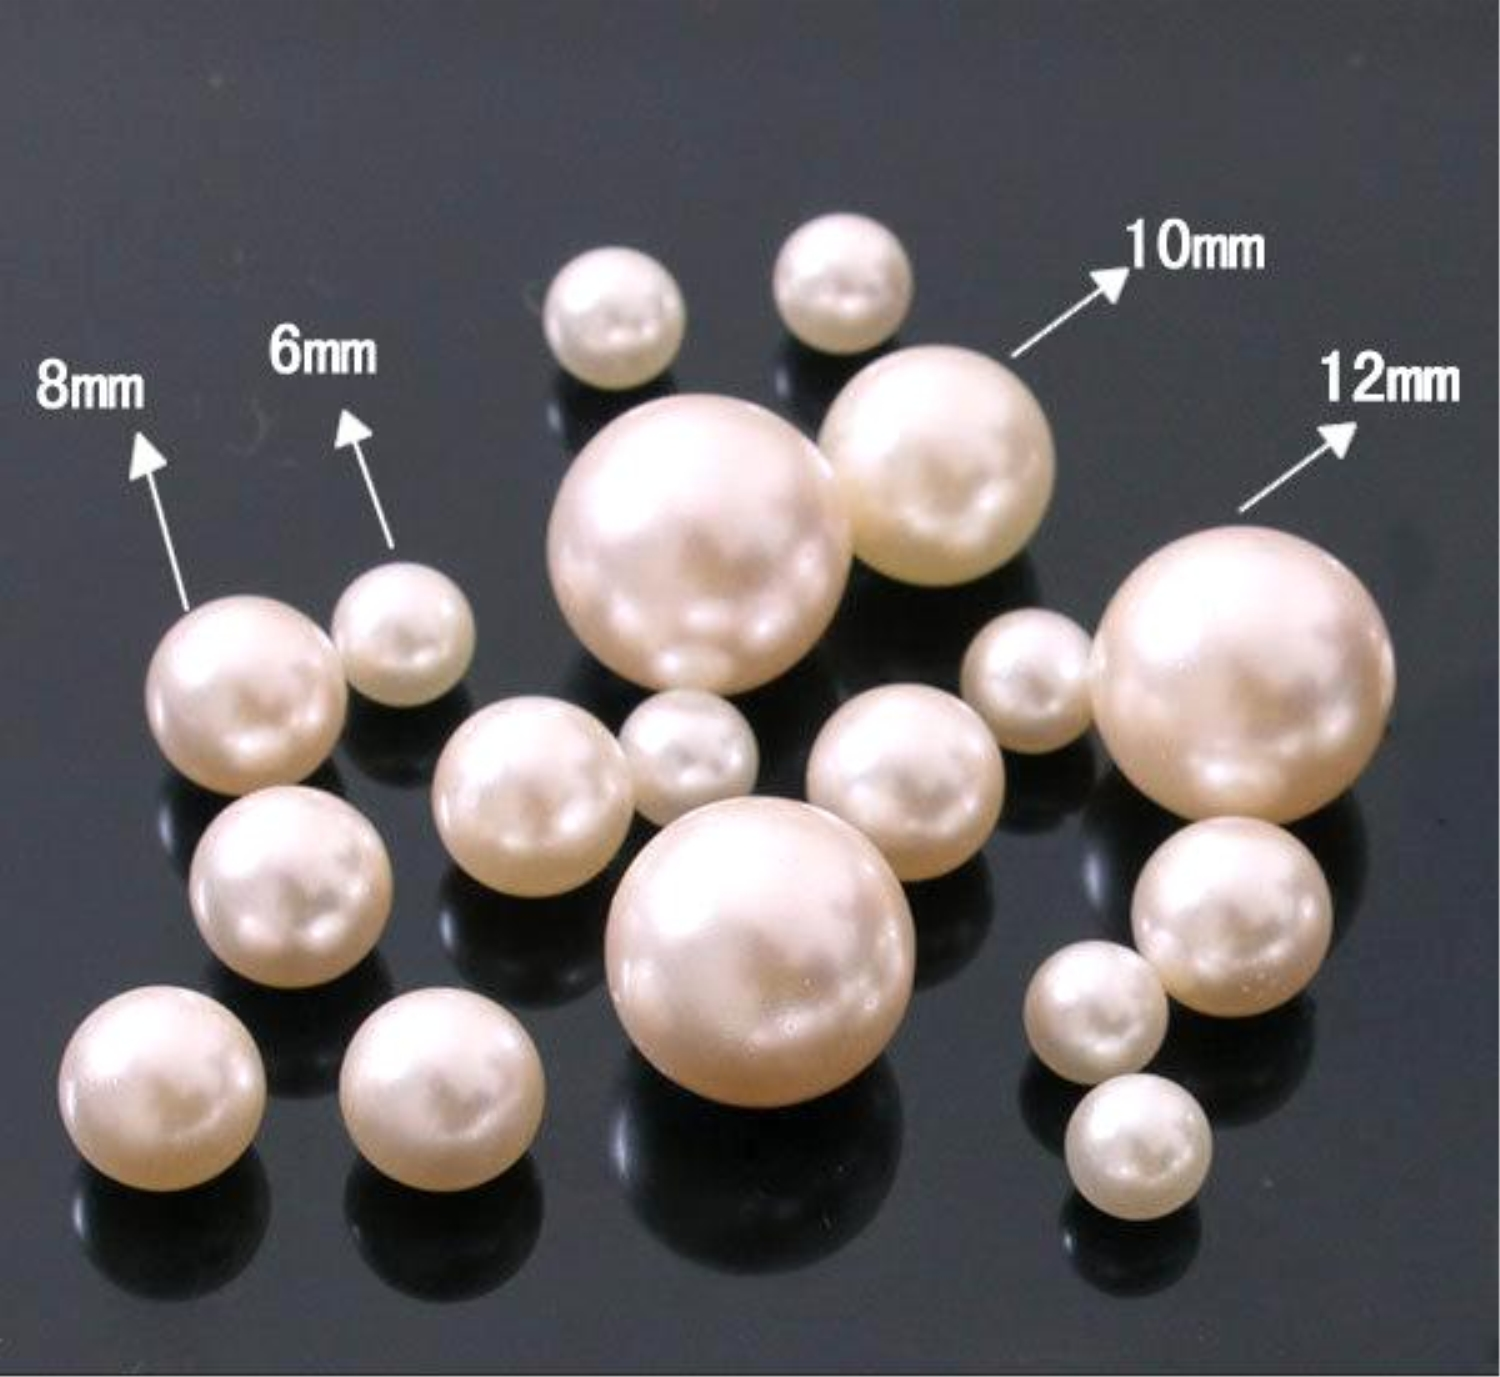 Large Plastic Pearls